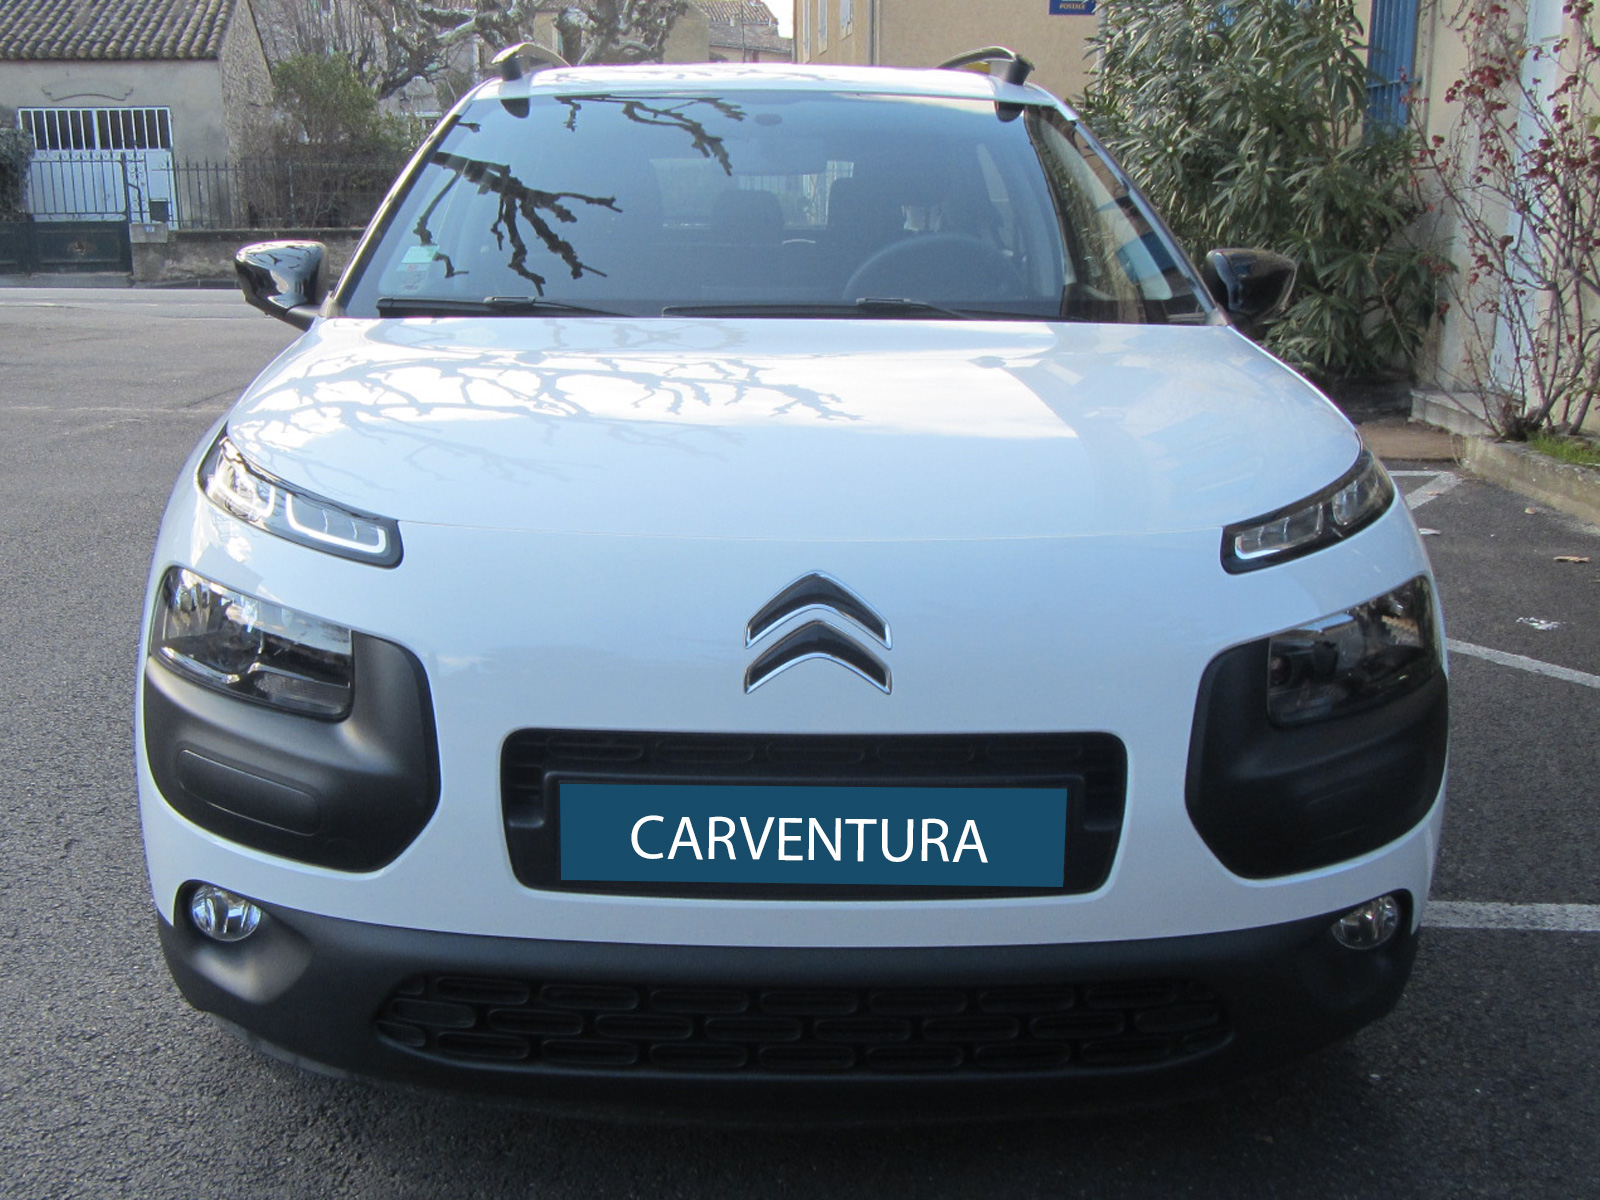 citroen c4 cactus 1 6 bluehdi 100 feel start stop carventura. Black Bedroom Furniture Sets. Home Design Ideas